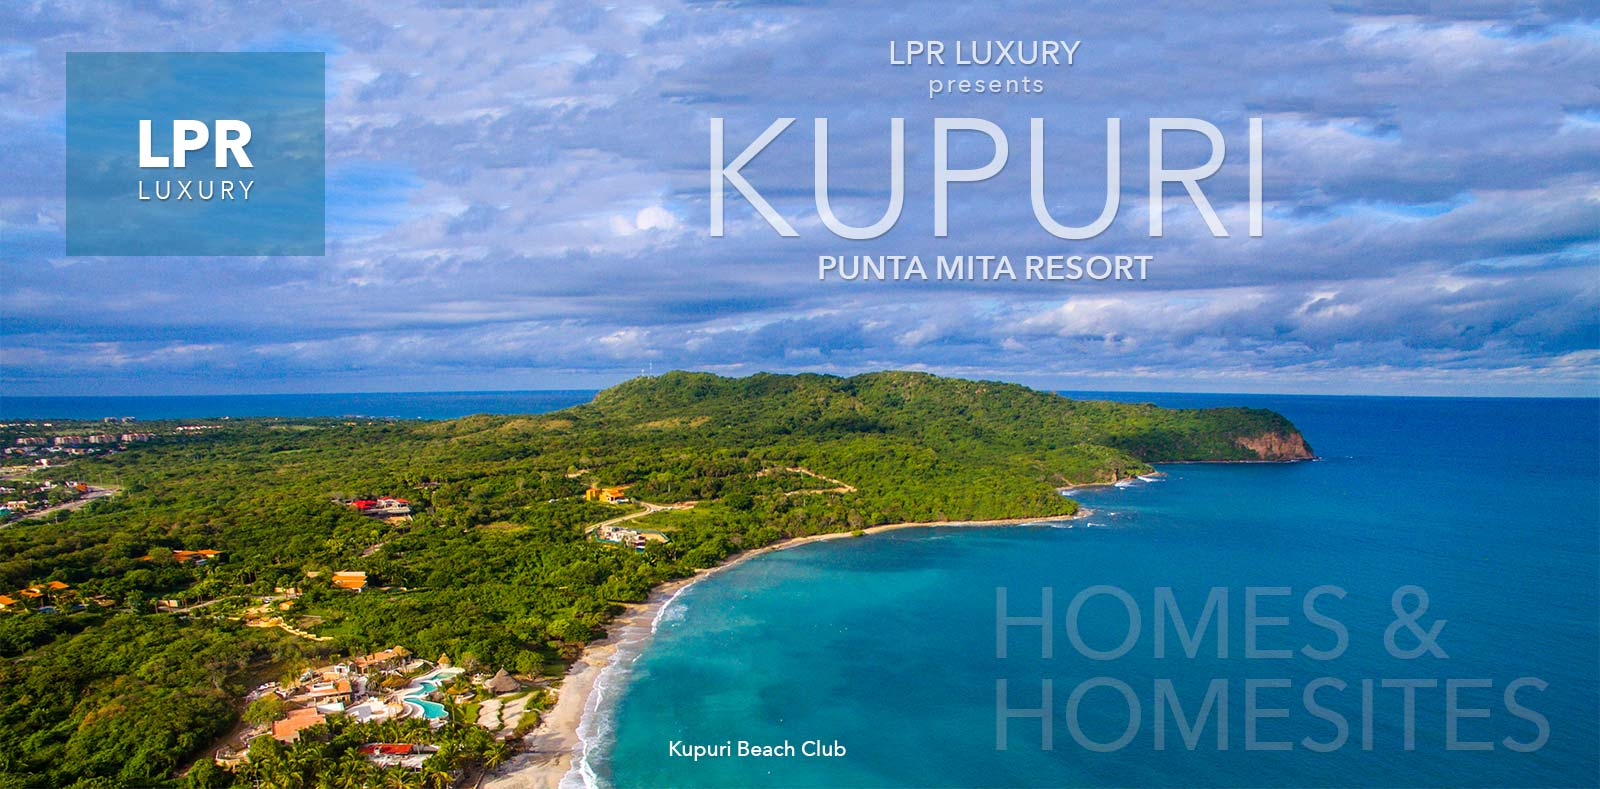 Kupuri Estates - Luxury Real Estate at the Punta Mita Resort, Mexico